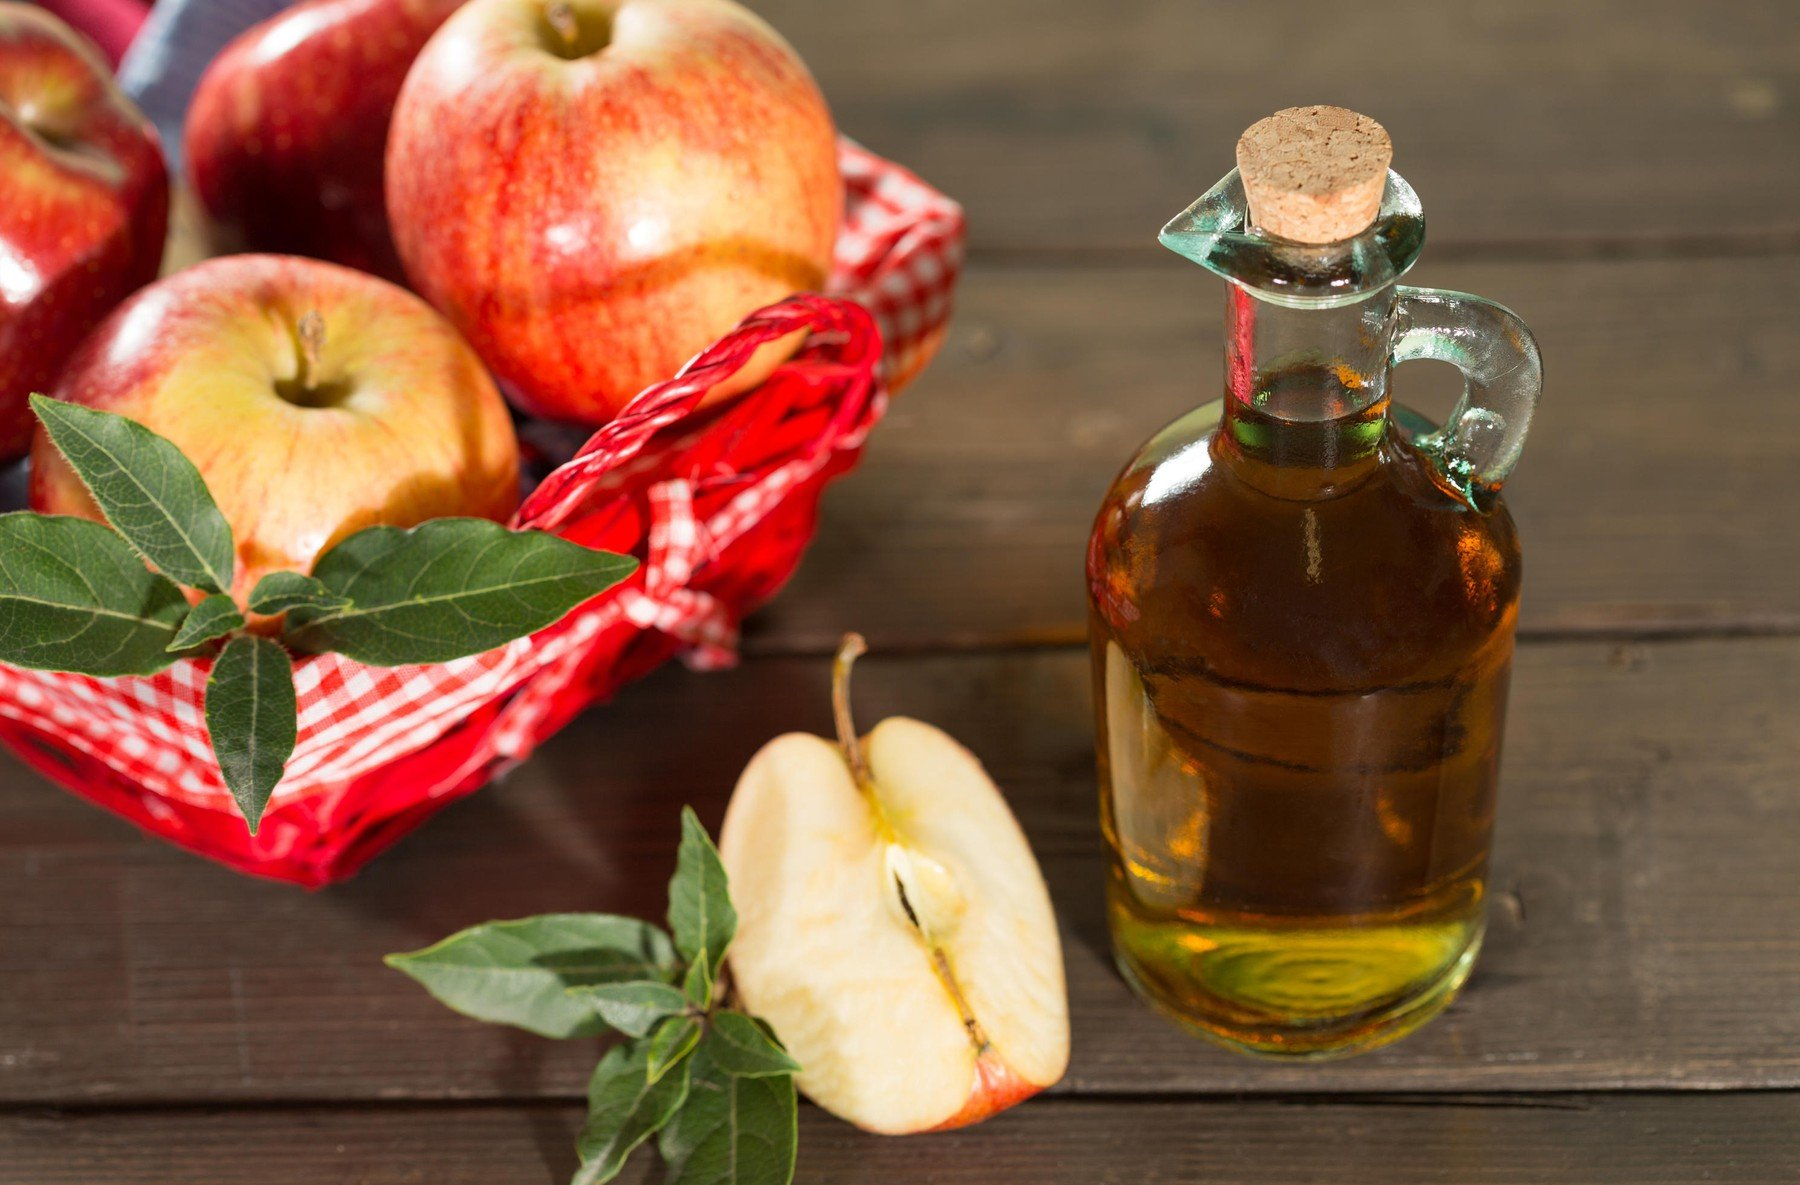 Apple cider vinegar with a fresh apple, Image: 237715448, License: Royalty-free, Restrictions: , Model Release: no, Credit line: Profimedia, Alamy